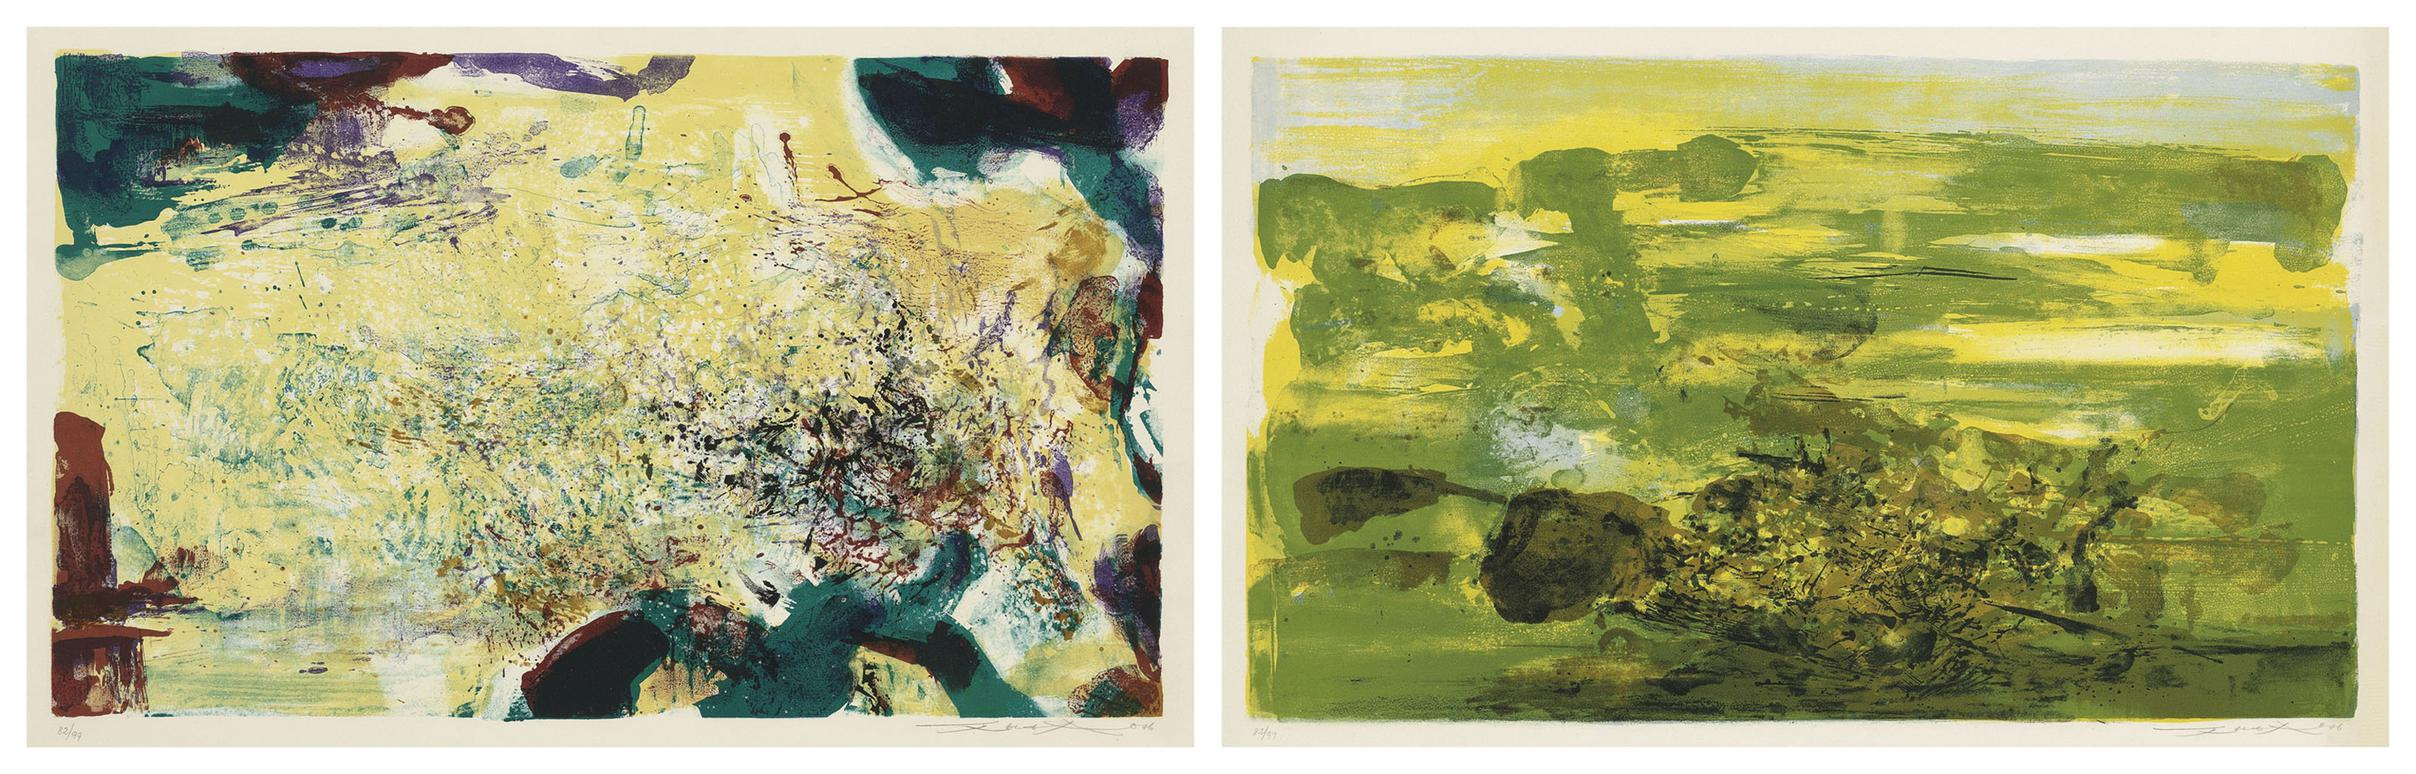 Zao Wou-Ki-Two Plates From: A La Gloire De Limage Et Art Poetique-1976